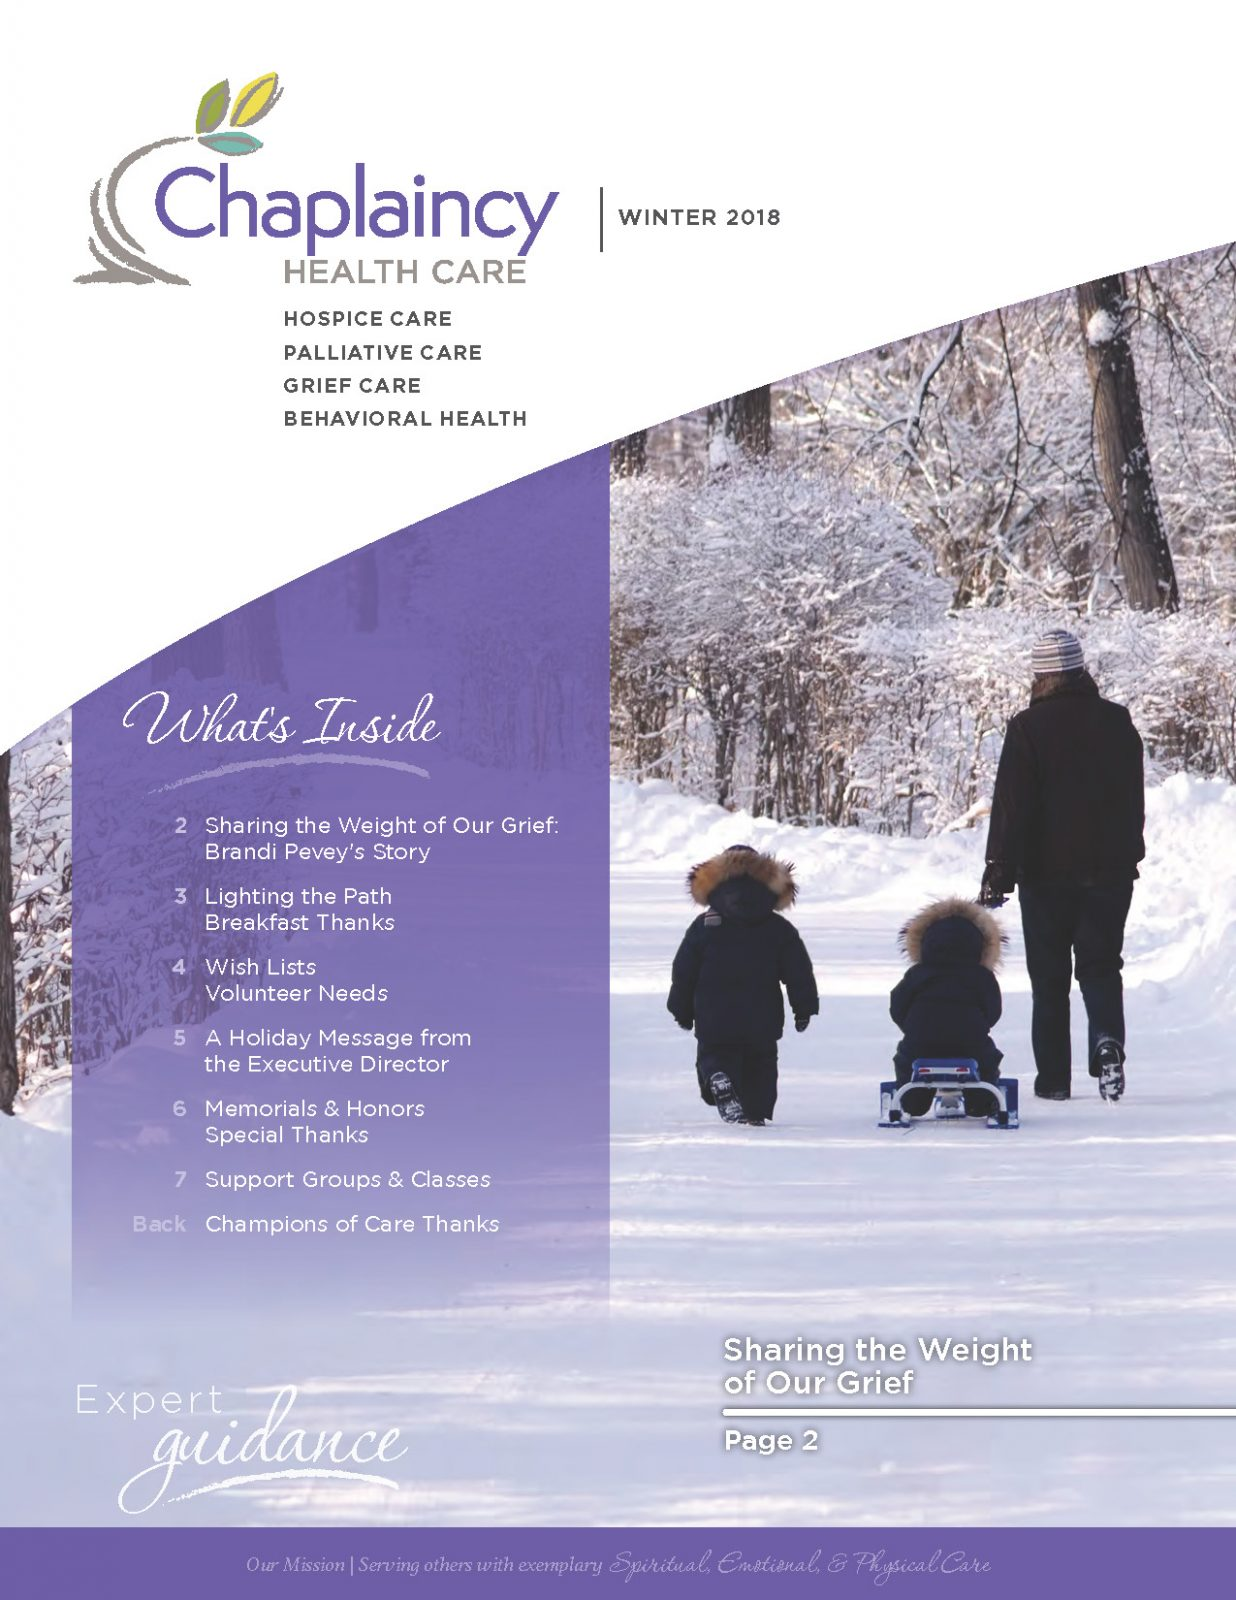 Chaplaincy Health Care Winter 2018 Newsletter